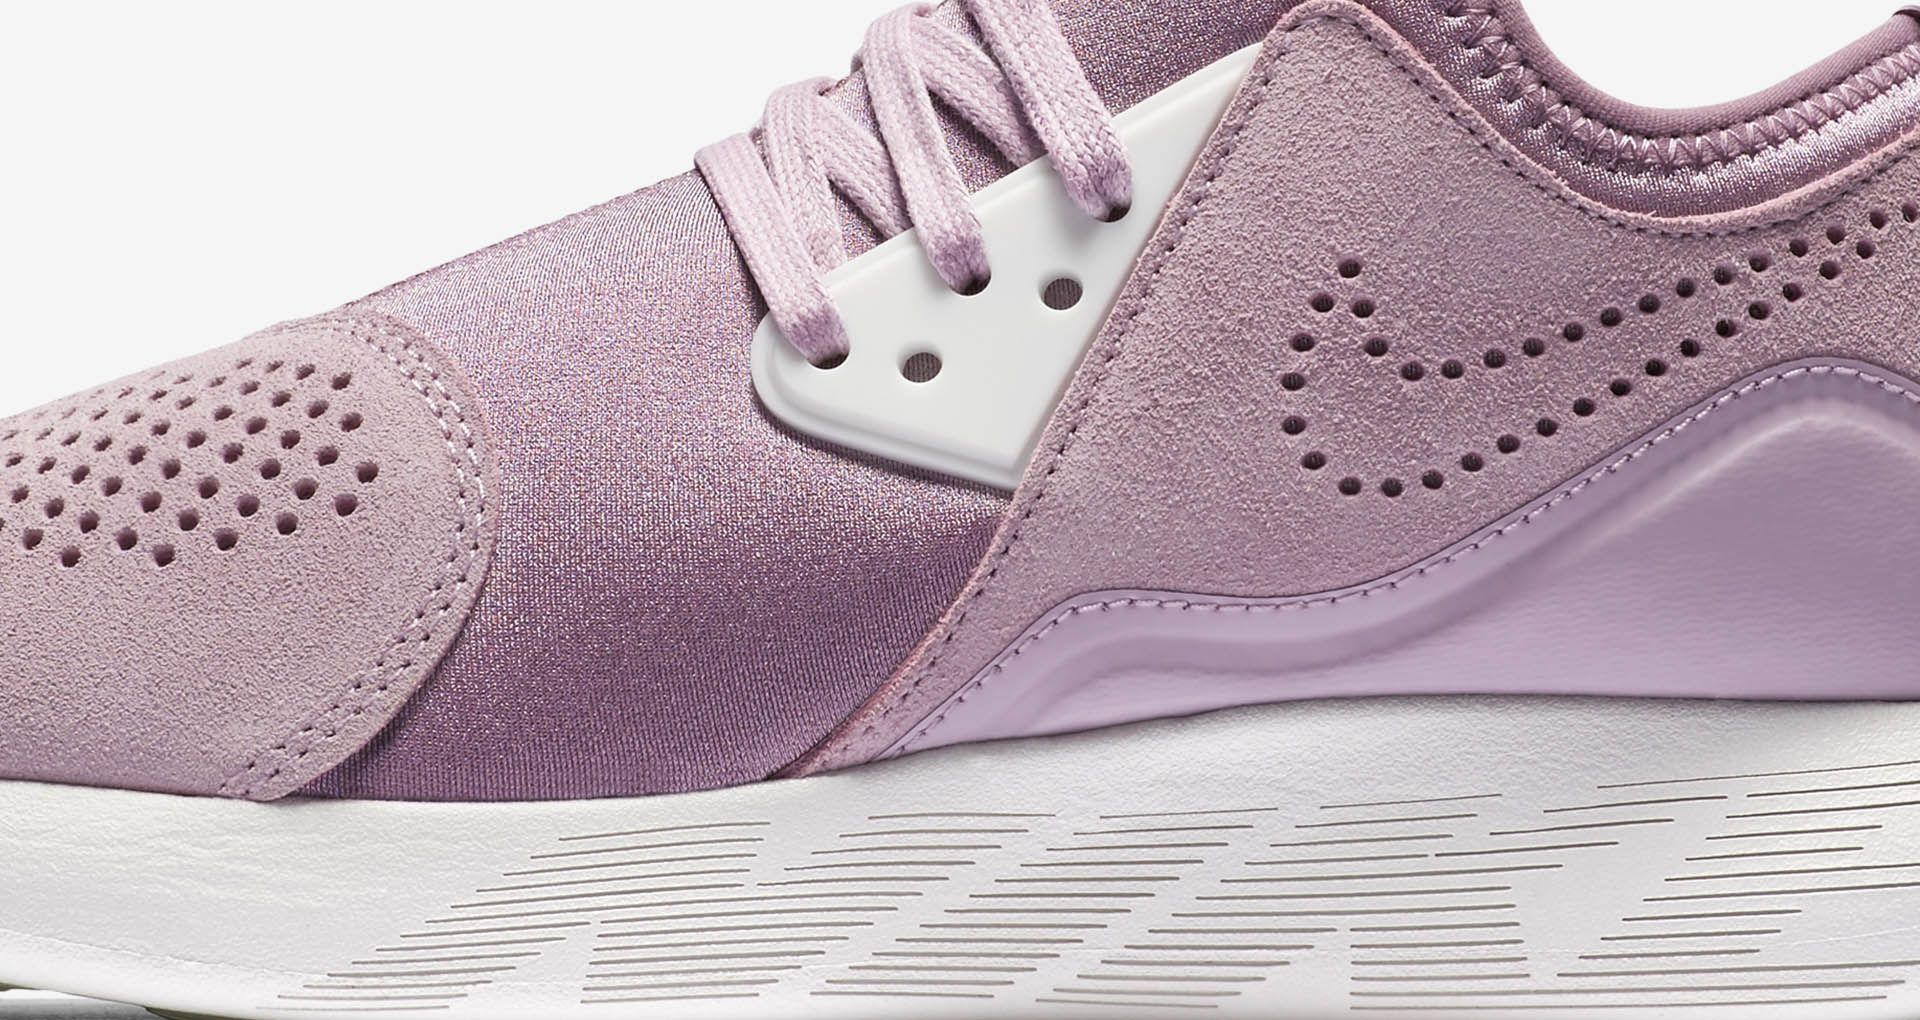 new products c1548 445b2 Take the streets by storm in this premium Iced Lilac edition of the  LunarCharge.